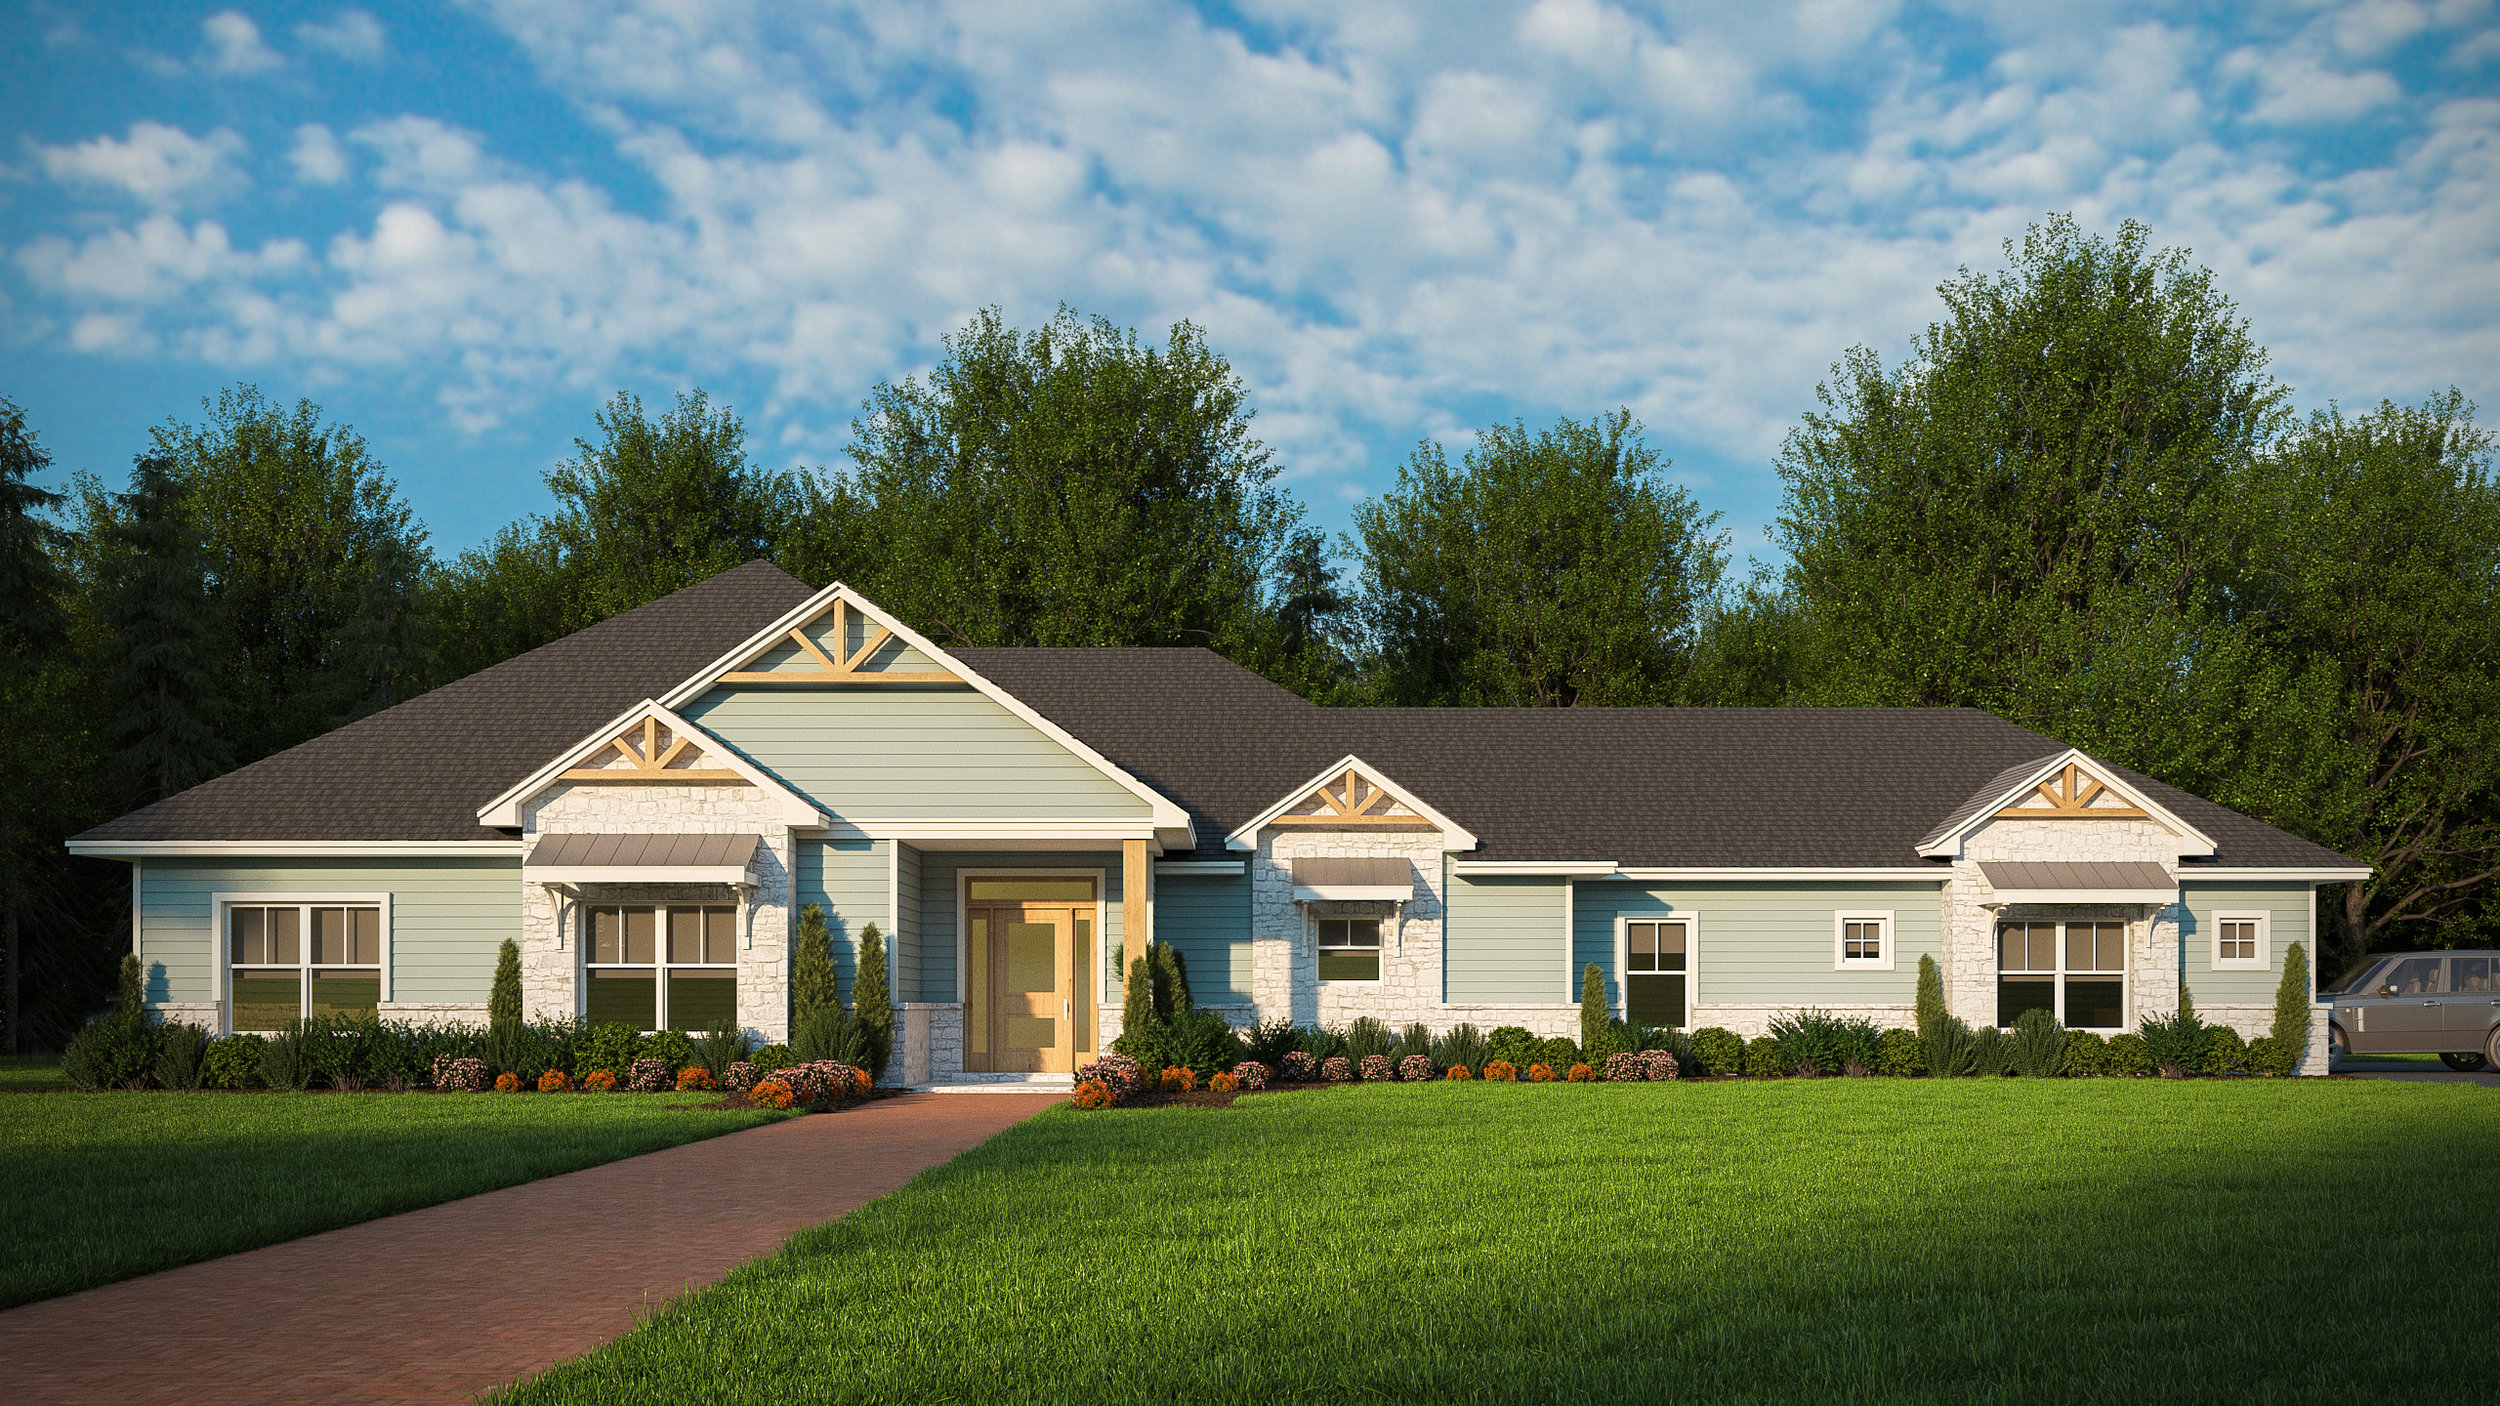 Beds: 4  Baths: 2.5  This plan features 4 bedrooms, 2 and a half bathrooms, an open concept living area with a fireplace, spacious closets, a large utility room and a 2 car garage.   Introductory Pricing $379,450